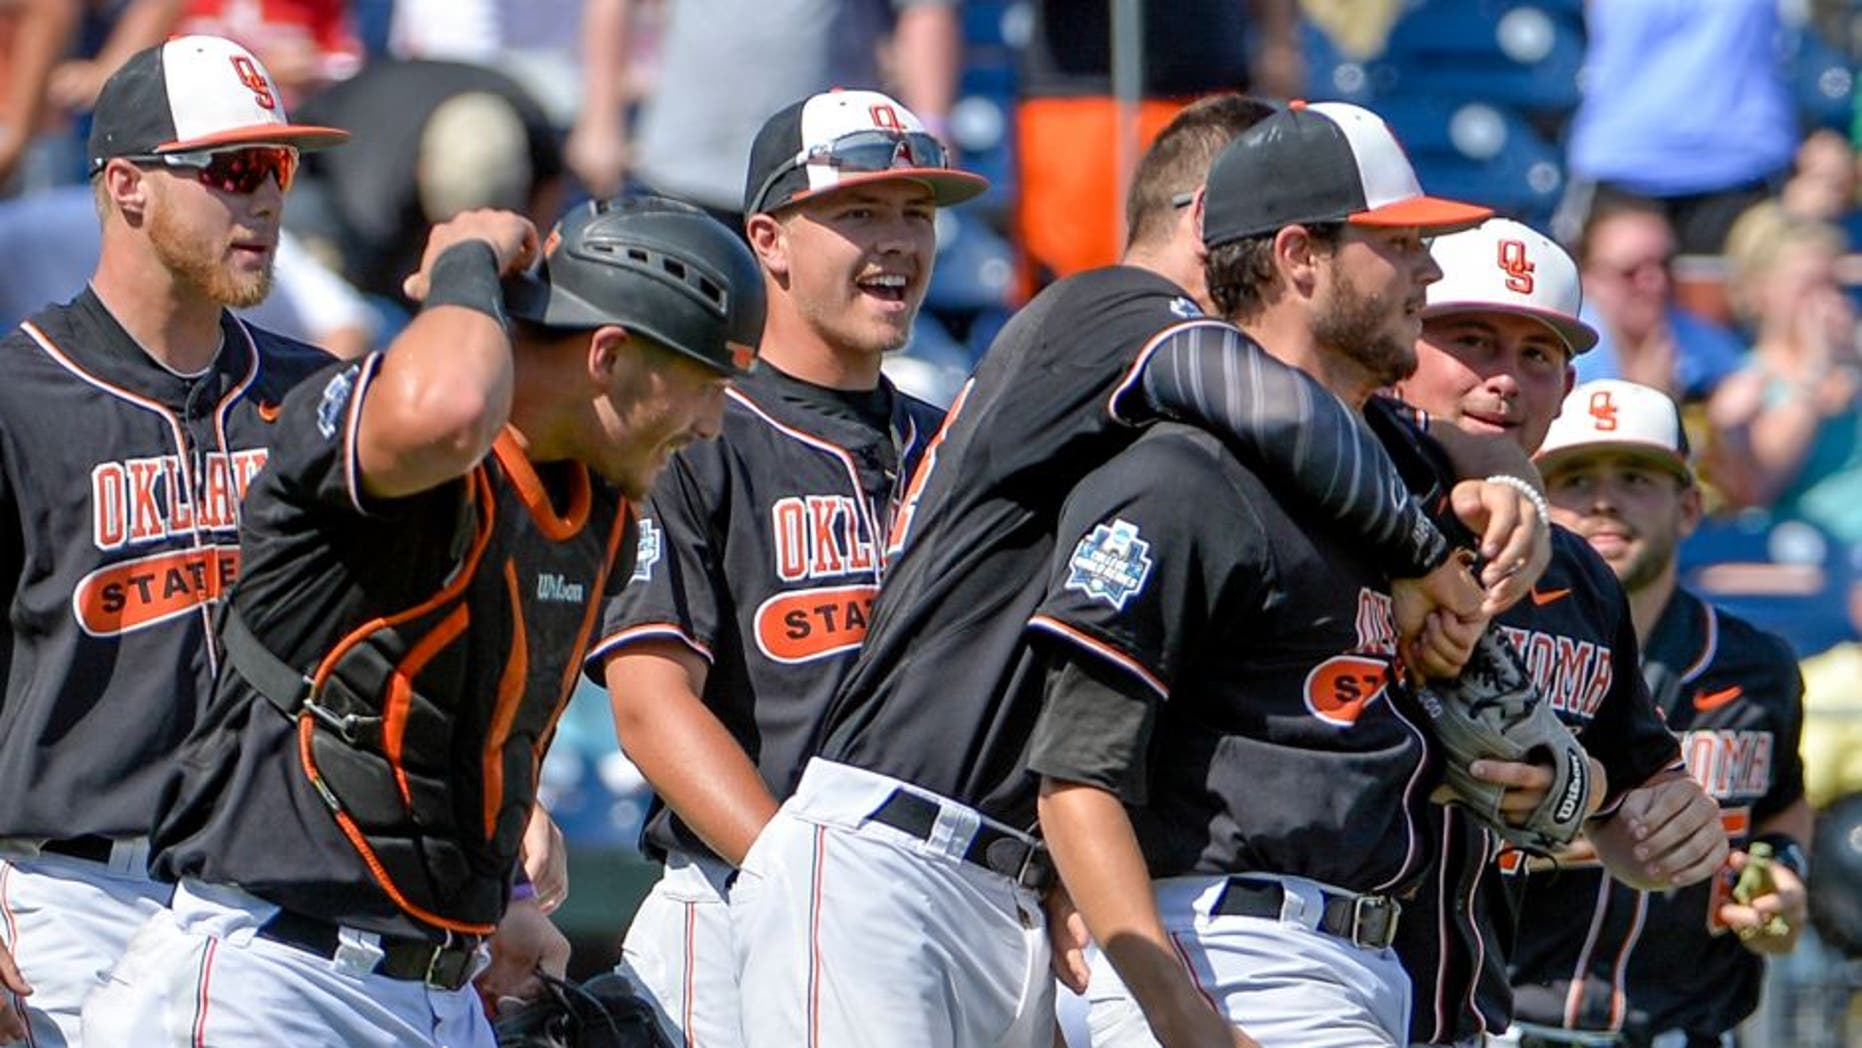 Oklahoma State starting pitcher Thomas Hatch, third from right, is congratulated by teammates after the last out of an NCAA men's College World Series baseball game against UC Santa Barbara in Omaha, Neb., Saturday, June 18, 2016. (AP Photo/Mike Theiler)